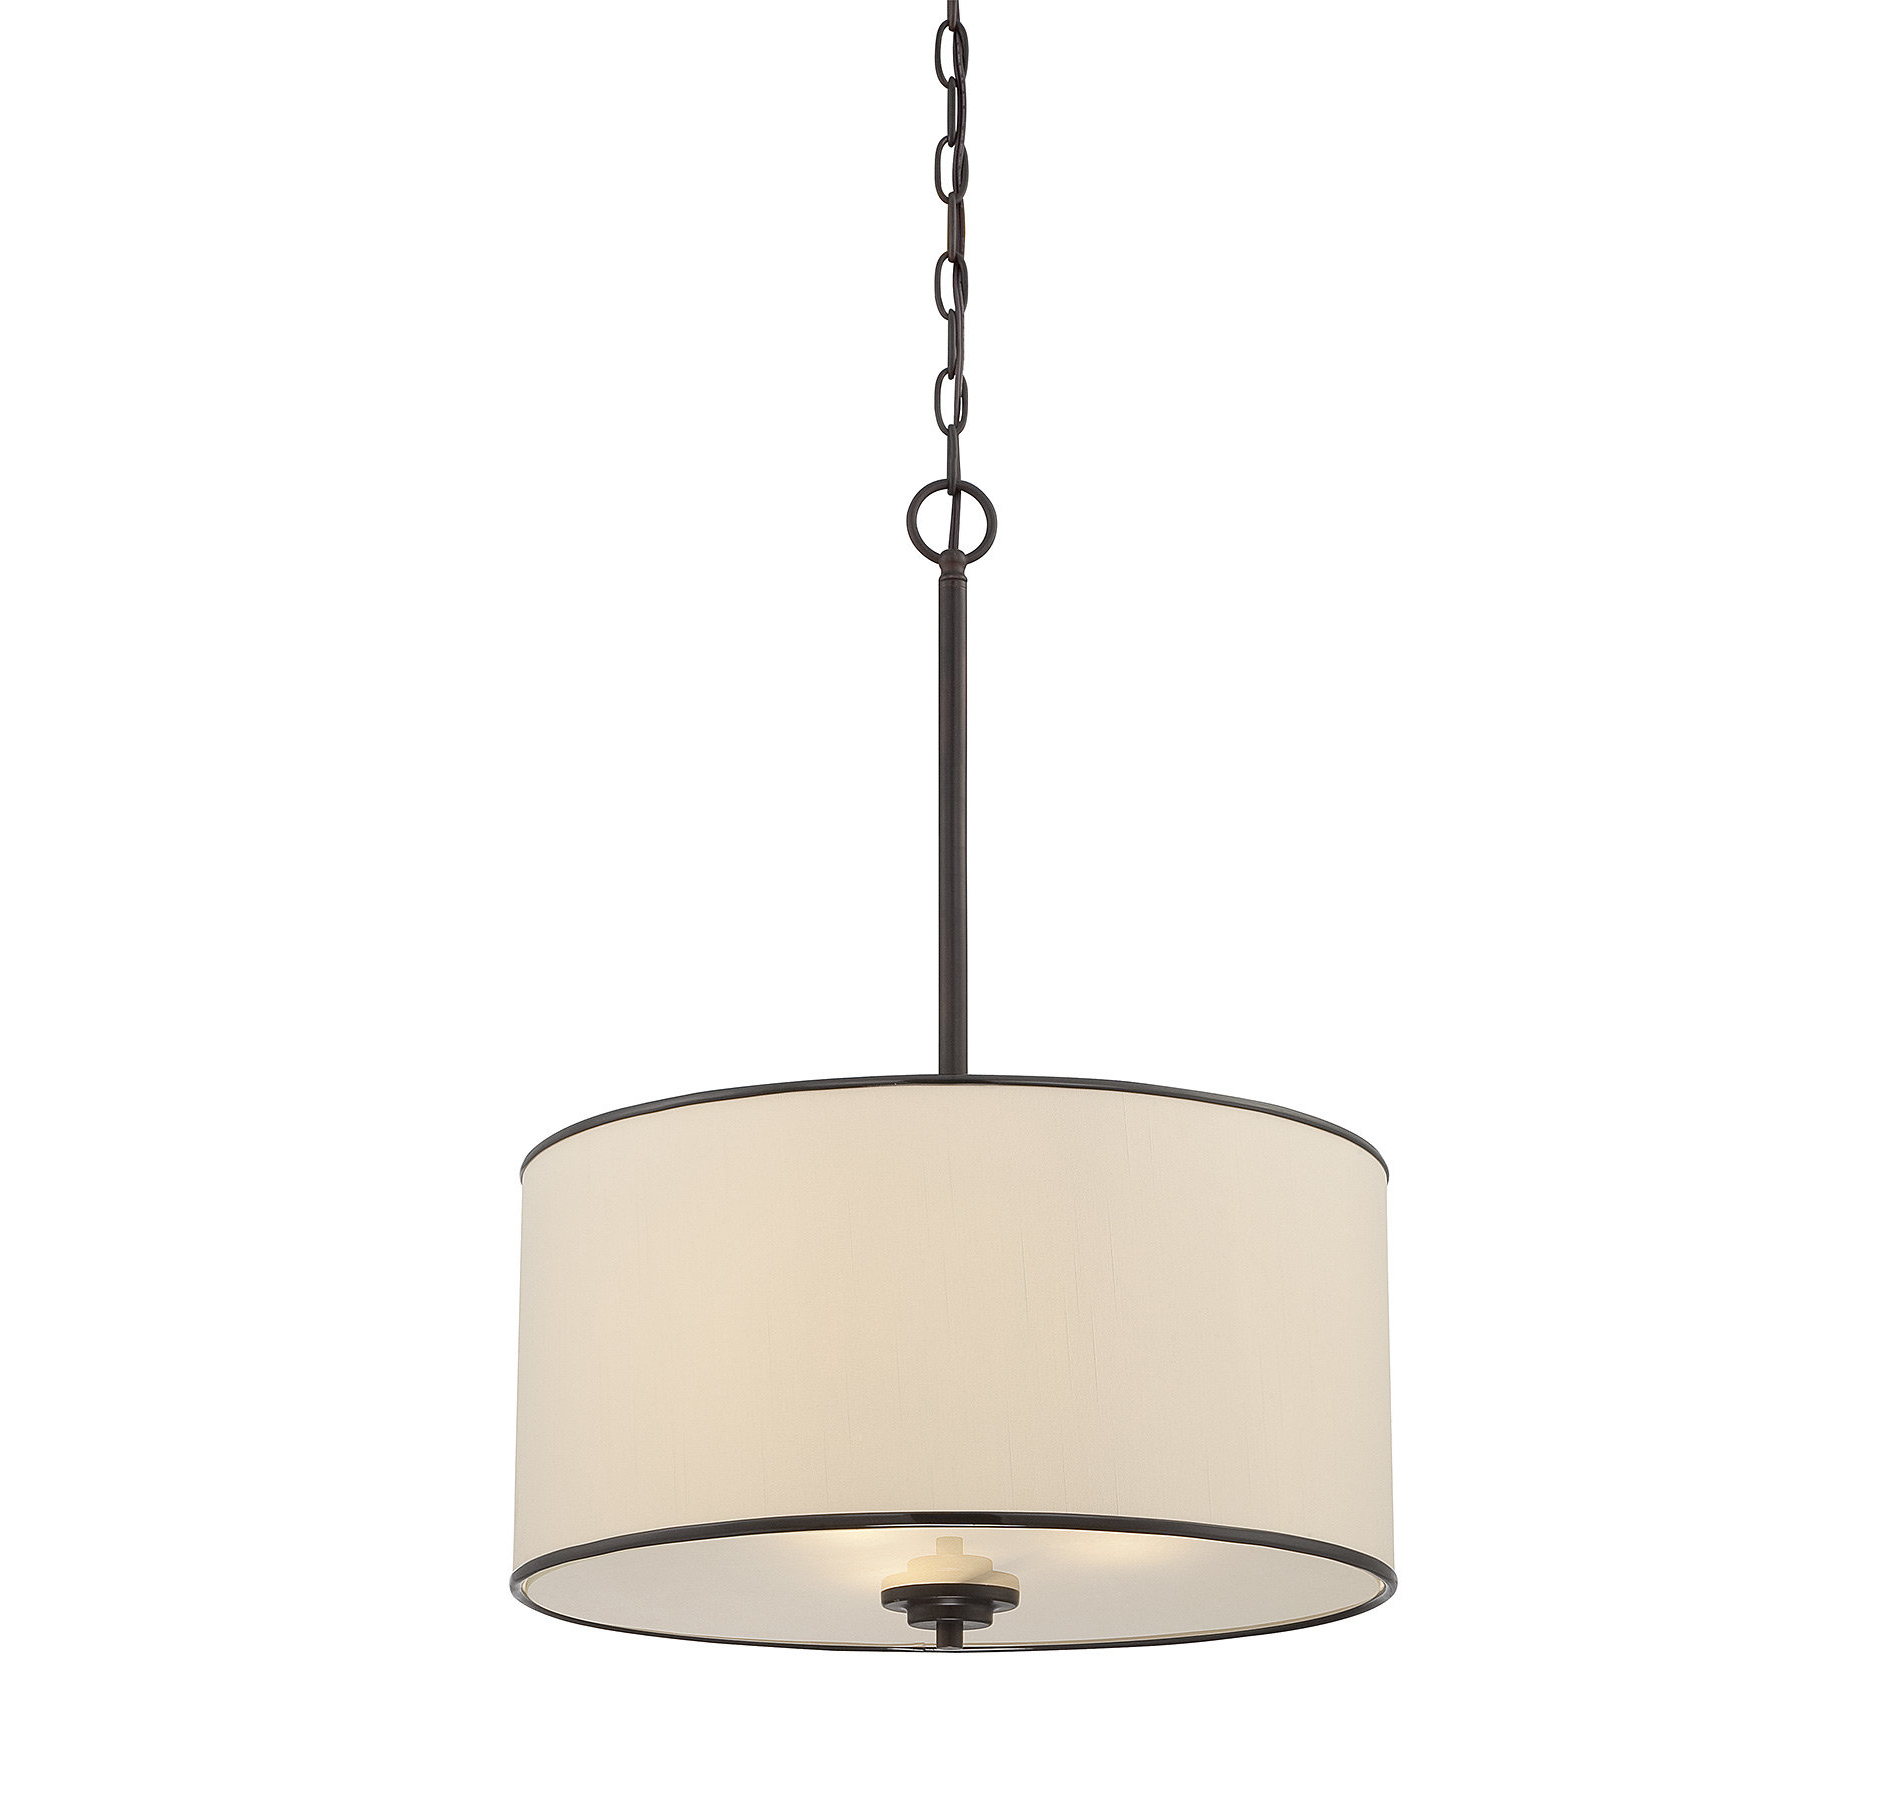 Friedland 3 Light Drum Tiered Pendants Intended For Newest Santamarina 3 Light Drum Chandelier (View 6 of 20)